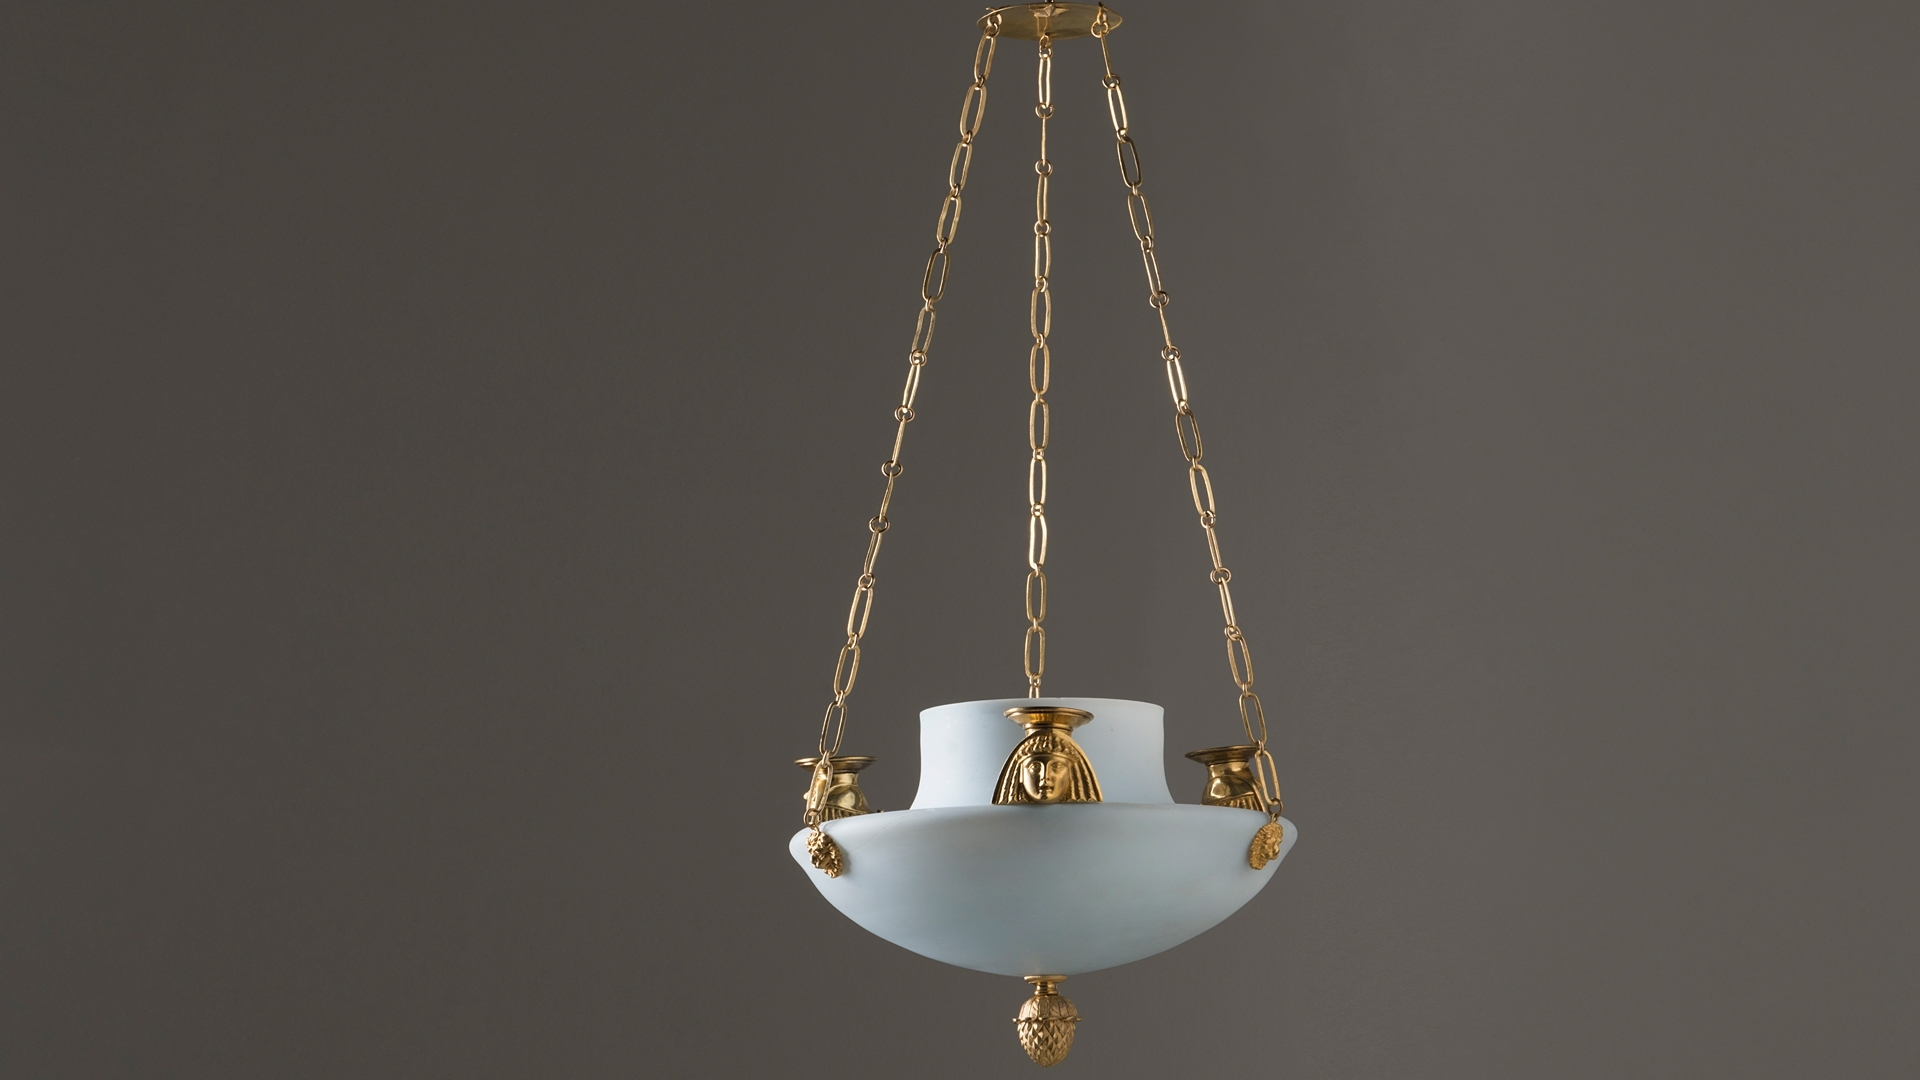 Current Chandelier In Egyptian Taste Circa 1800 Hoffmans Antikhandel With Regard To Egyptian Chandelier (View 4 of 15)